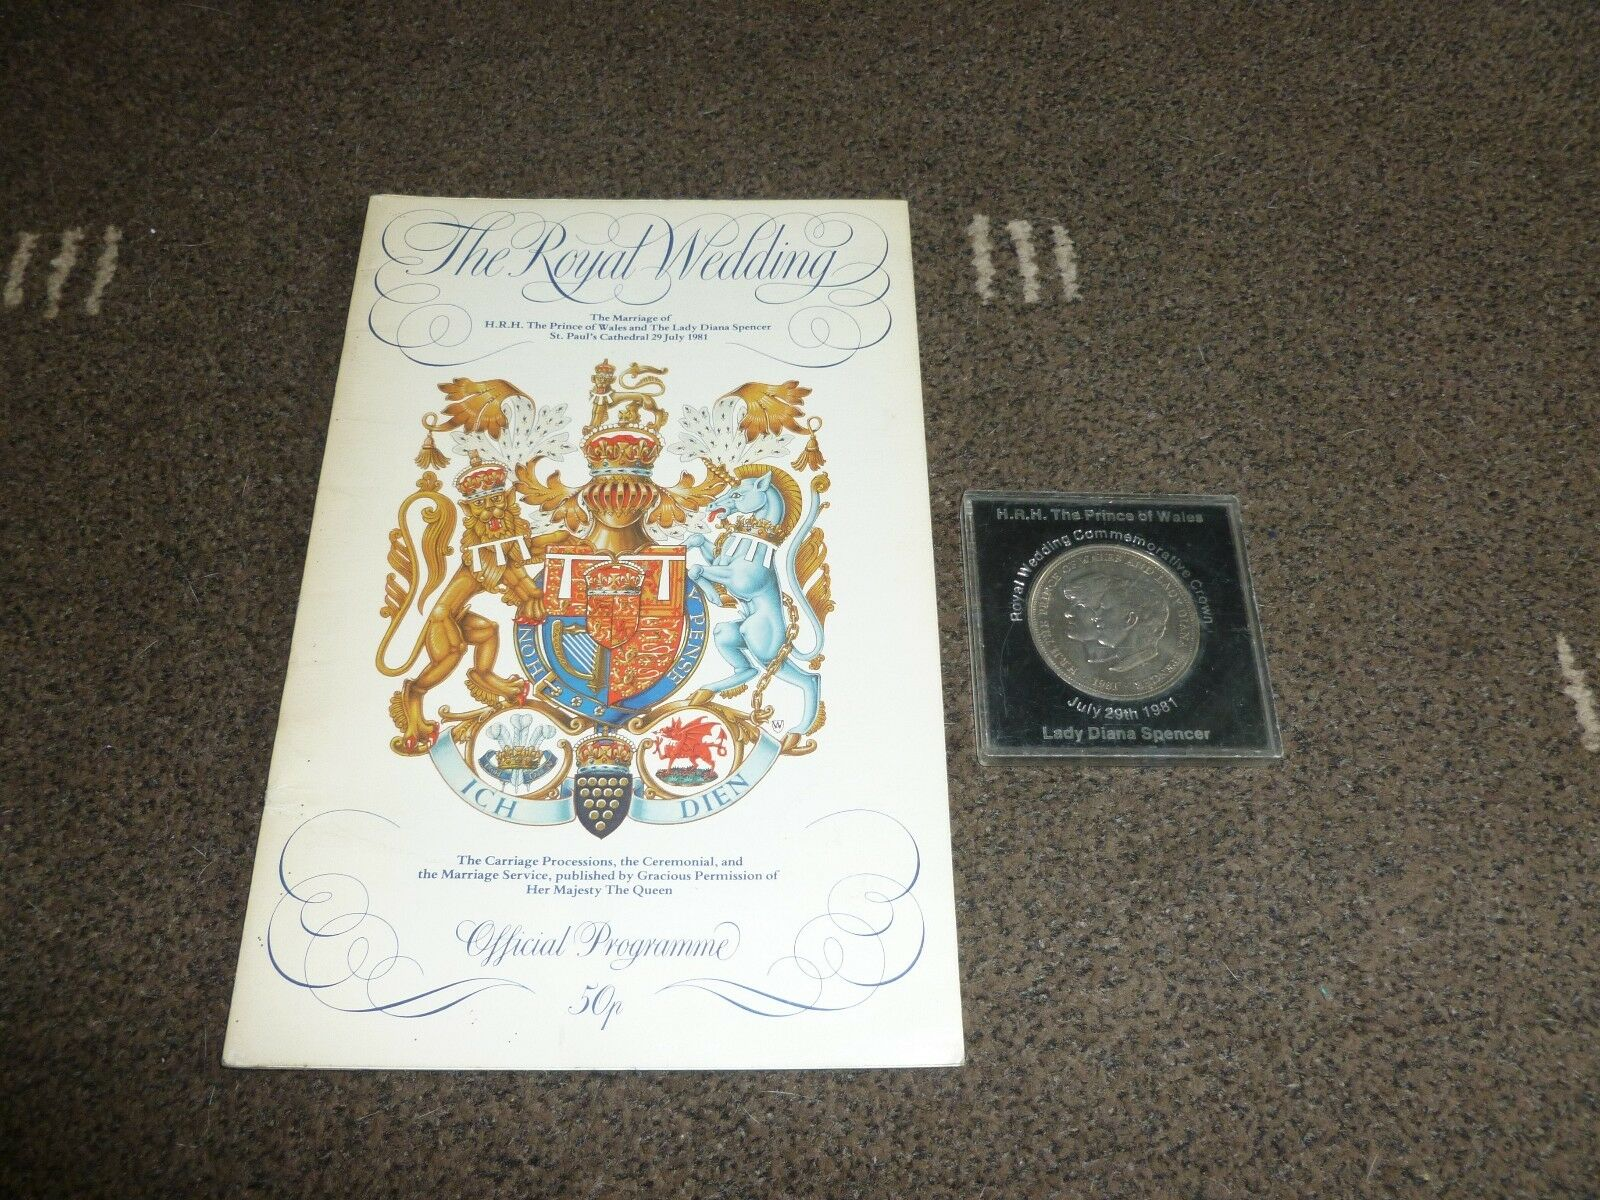 The Royal Wedding 1981, Prince Of Wales and Lady Diana Spencer, Official Programme